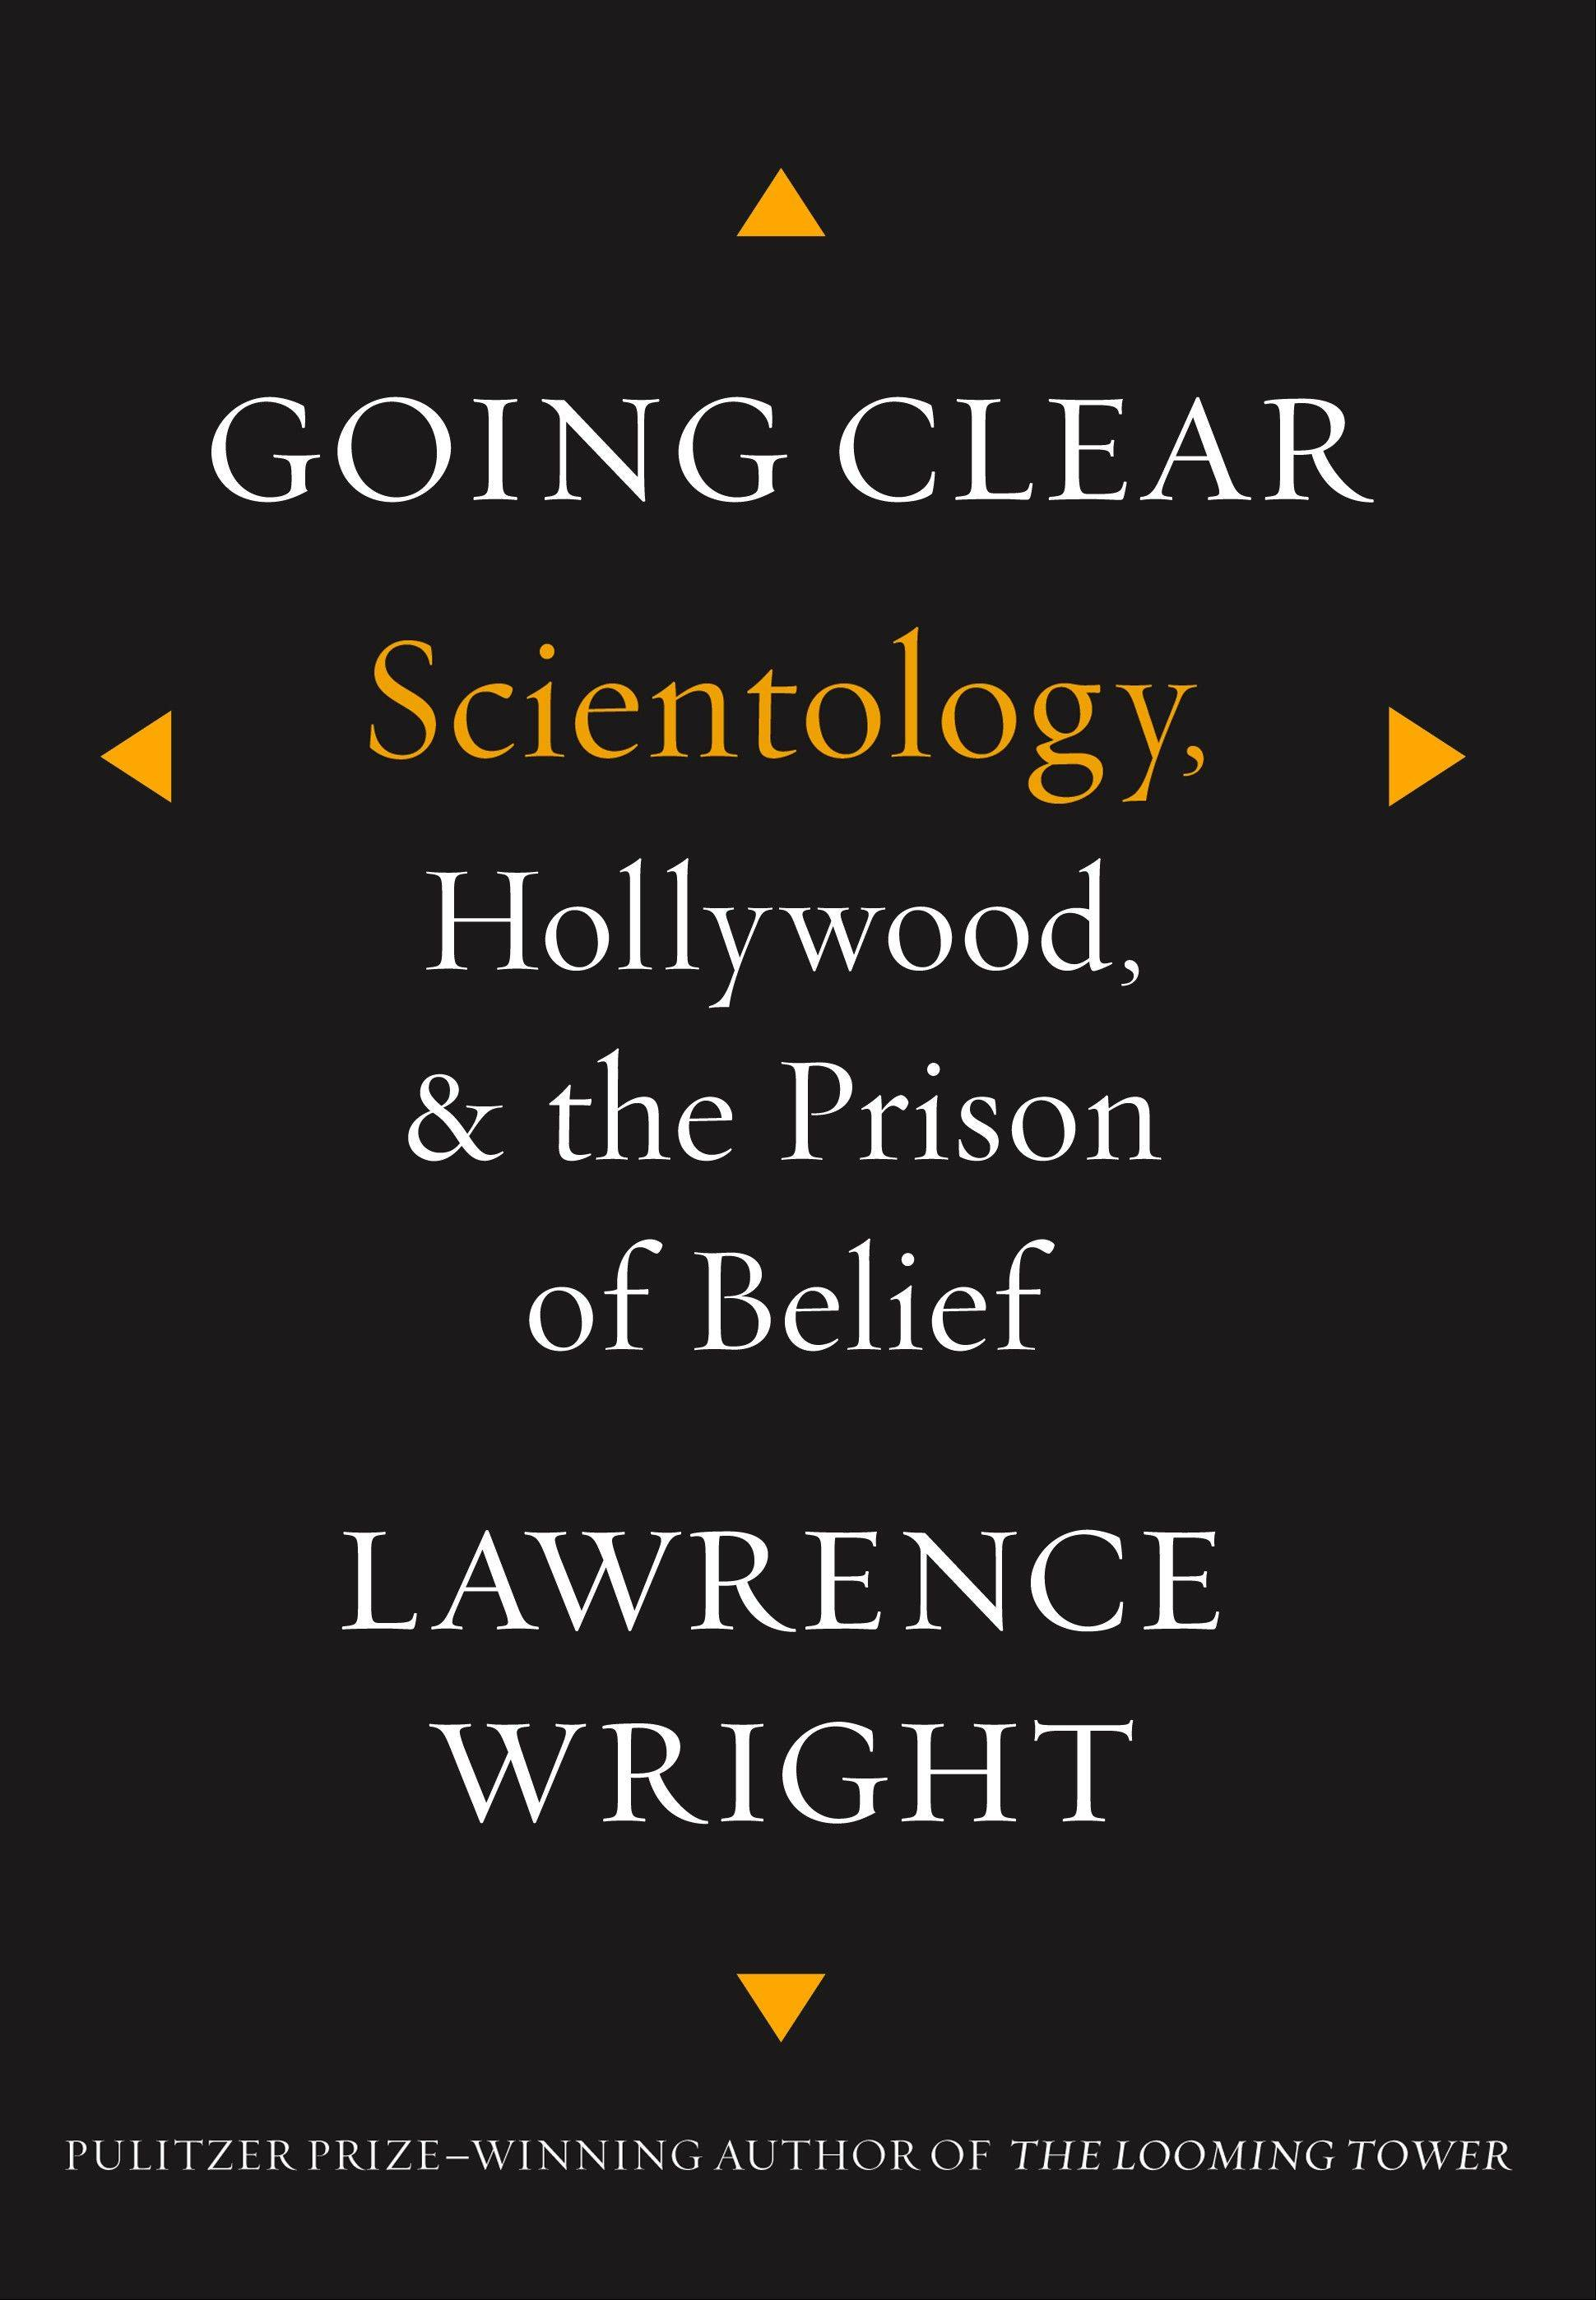 �Going Clear: Scientology, Hollywood & the Prison of Belief� by Lawrence Wright